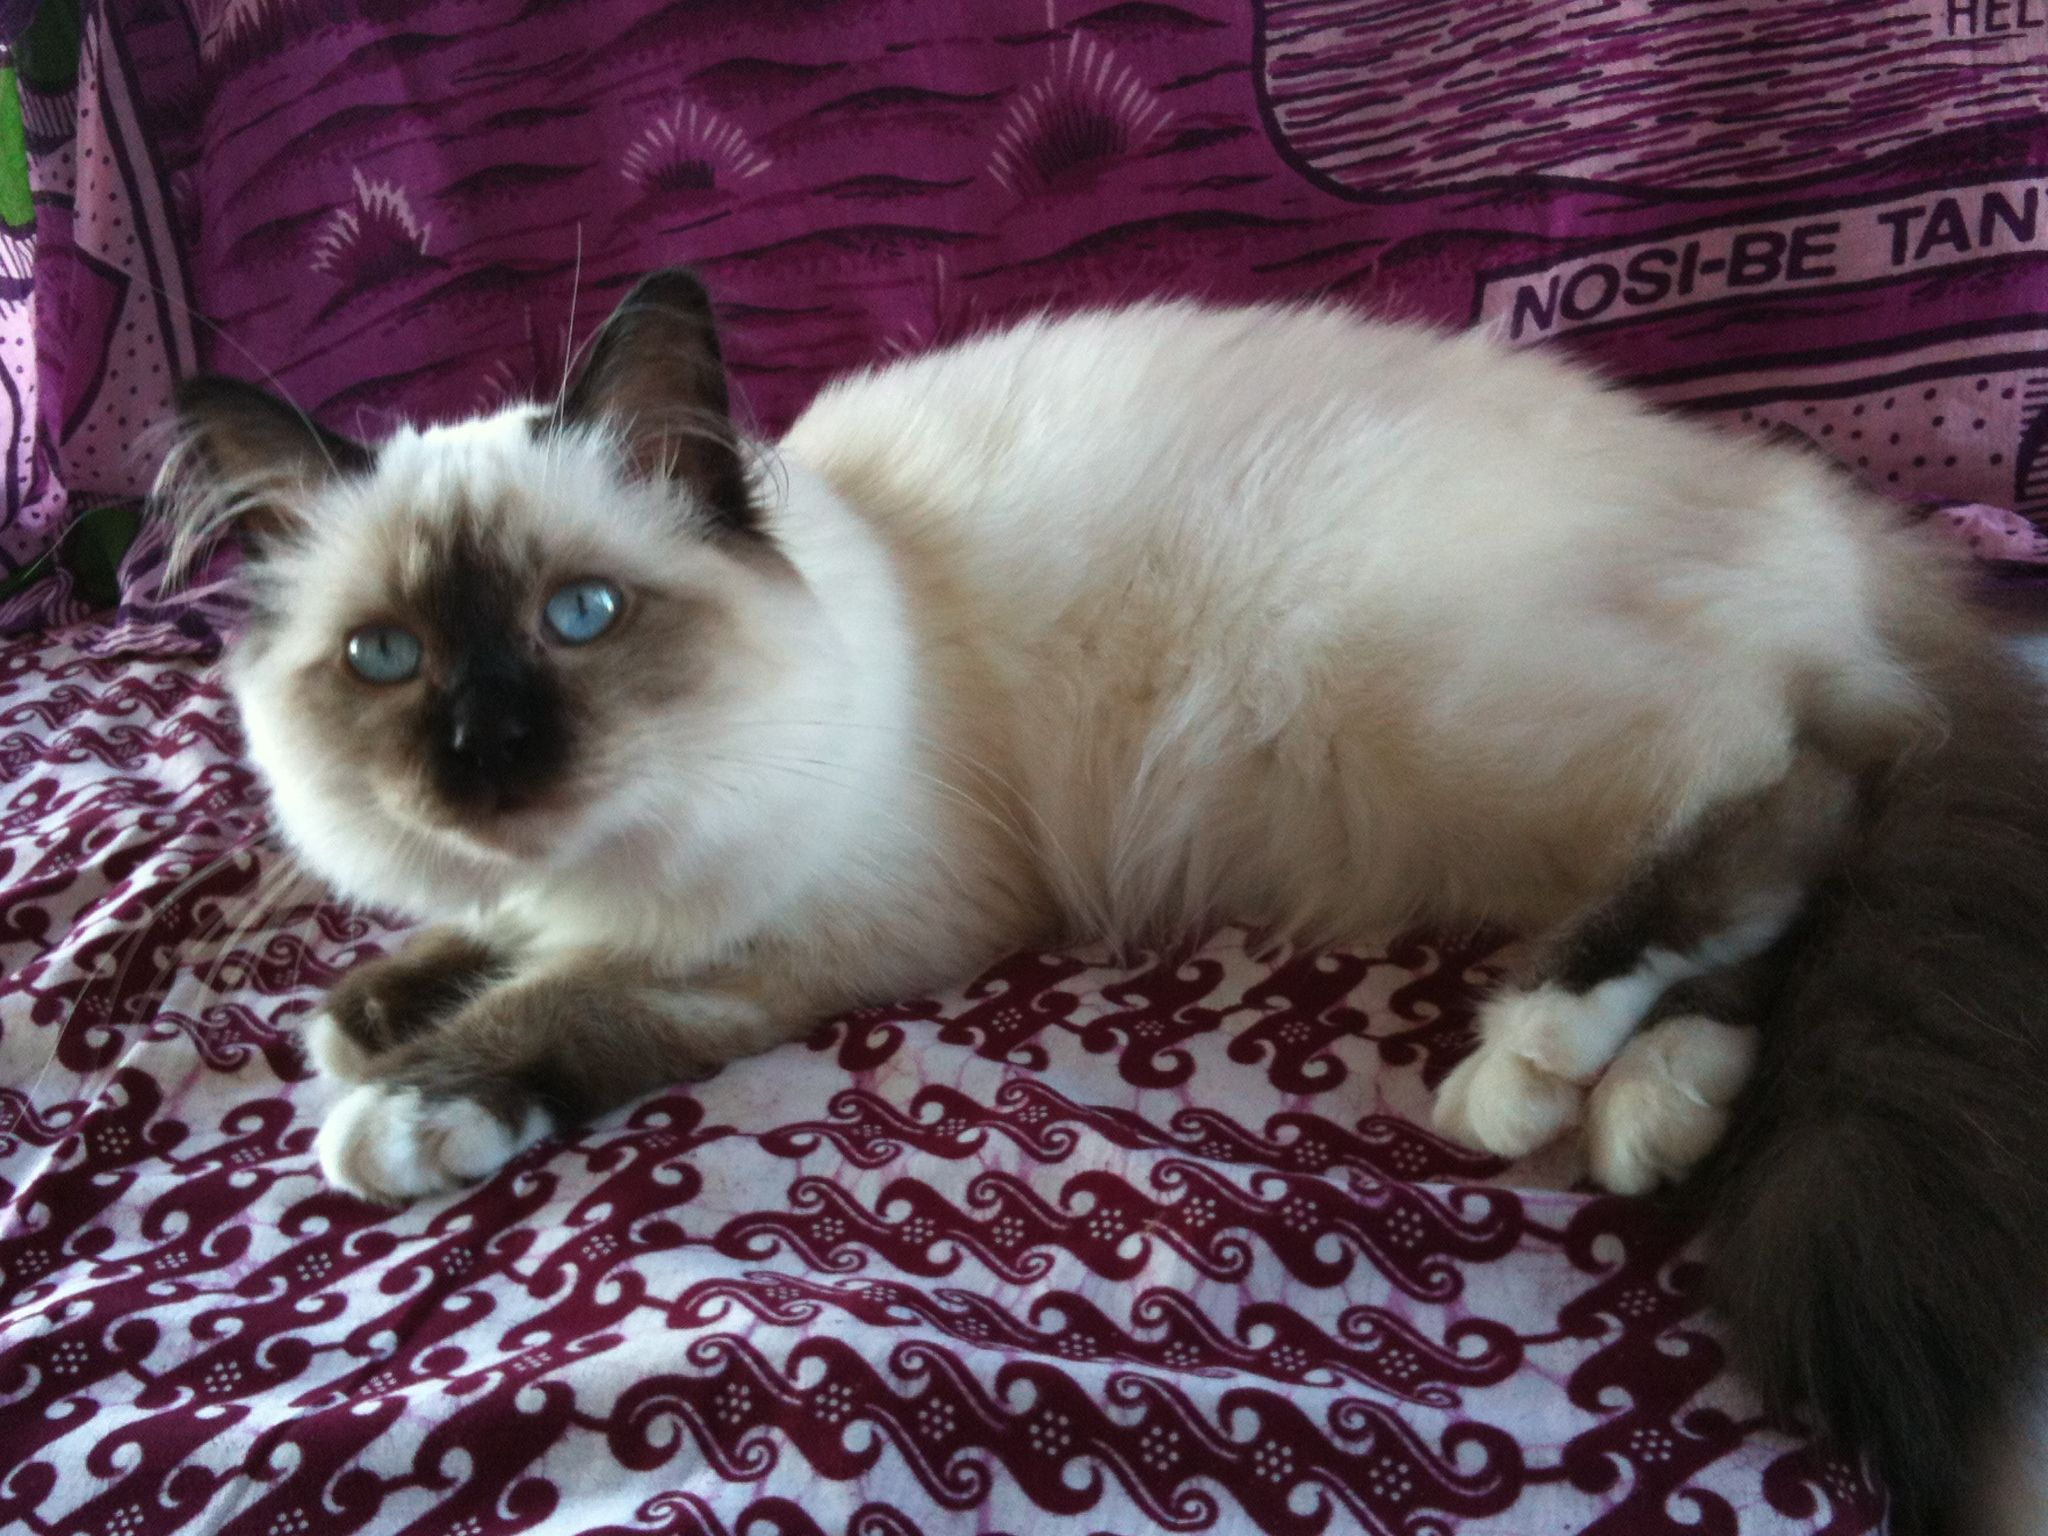 Lou-Soa ma princesse #birman #sacredebirmanie #chat #chaton ...